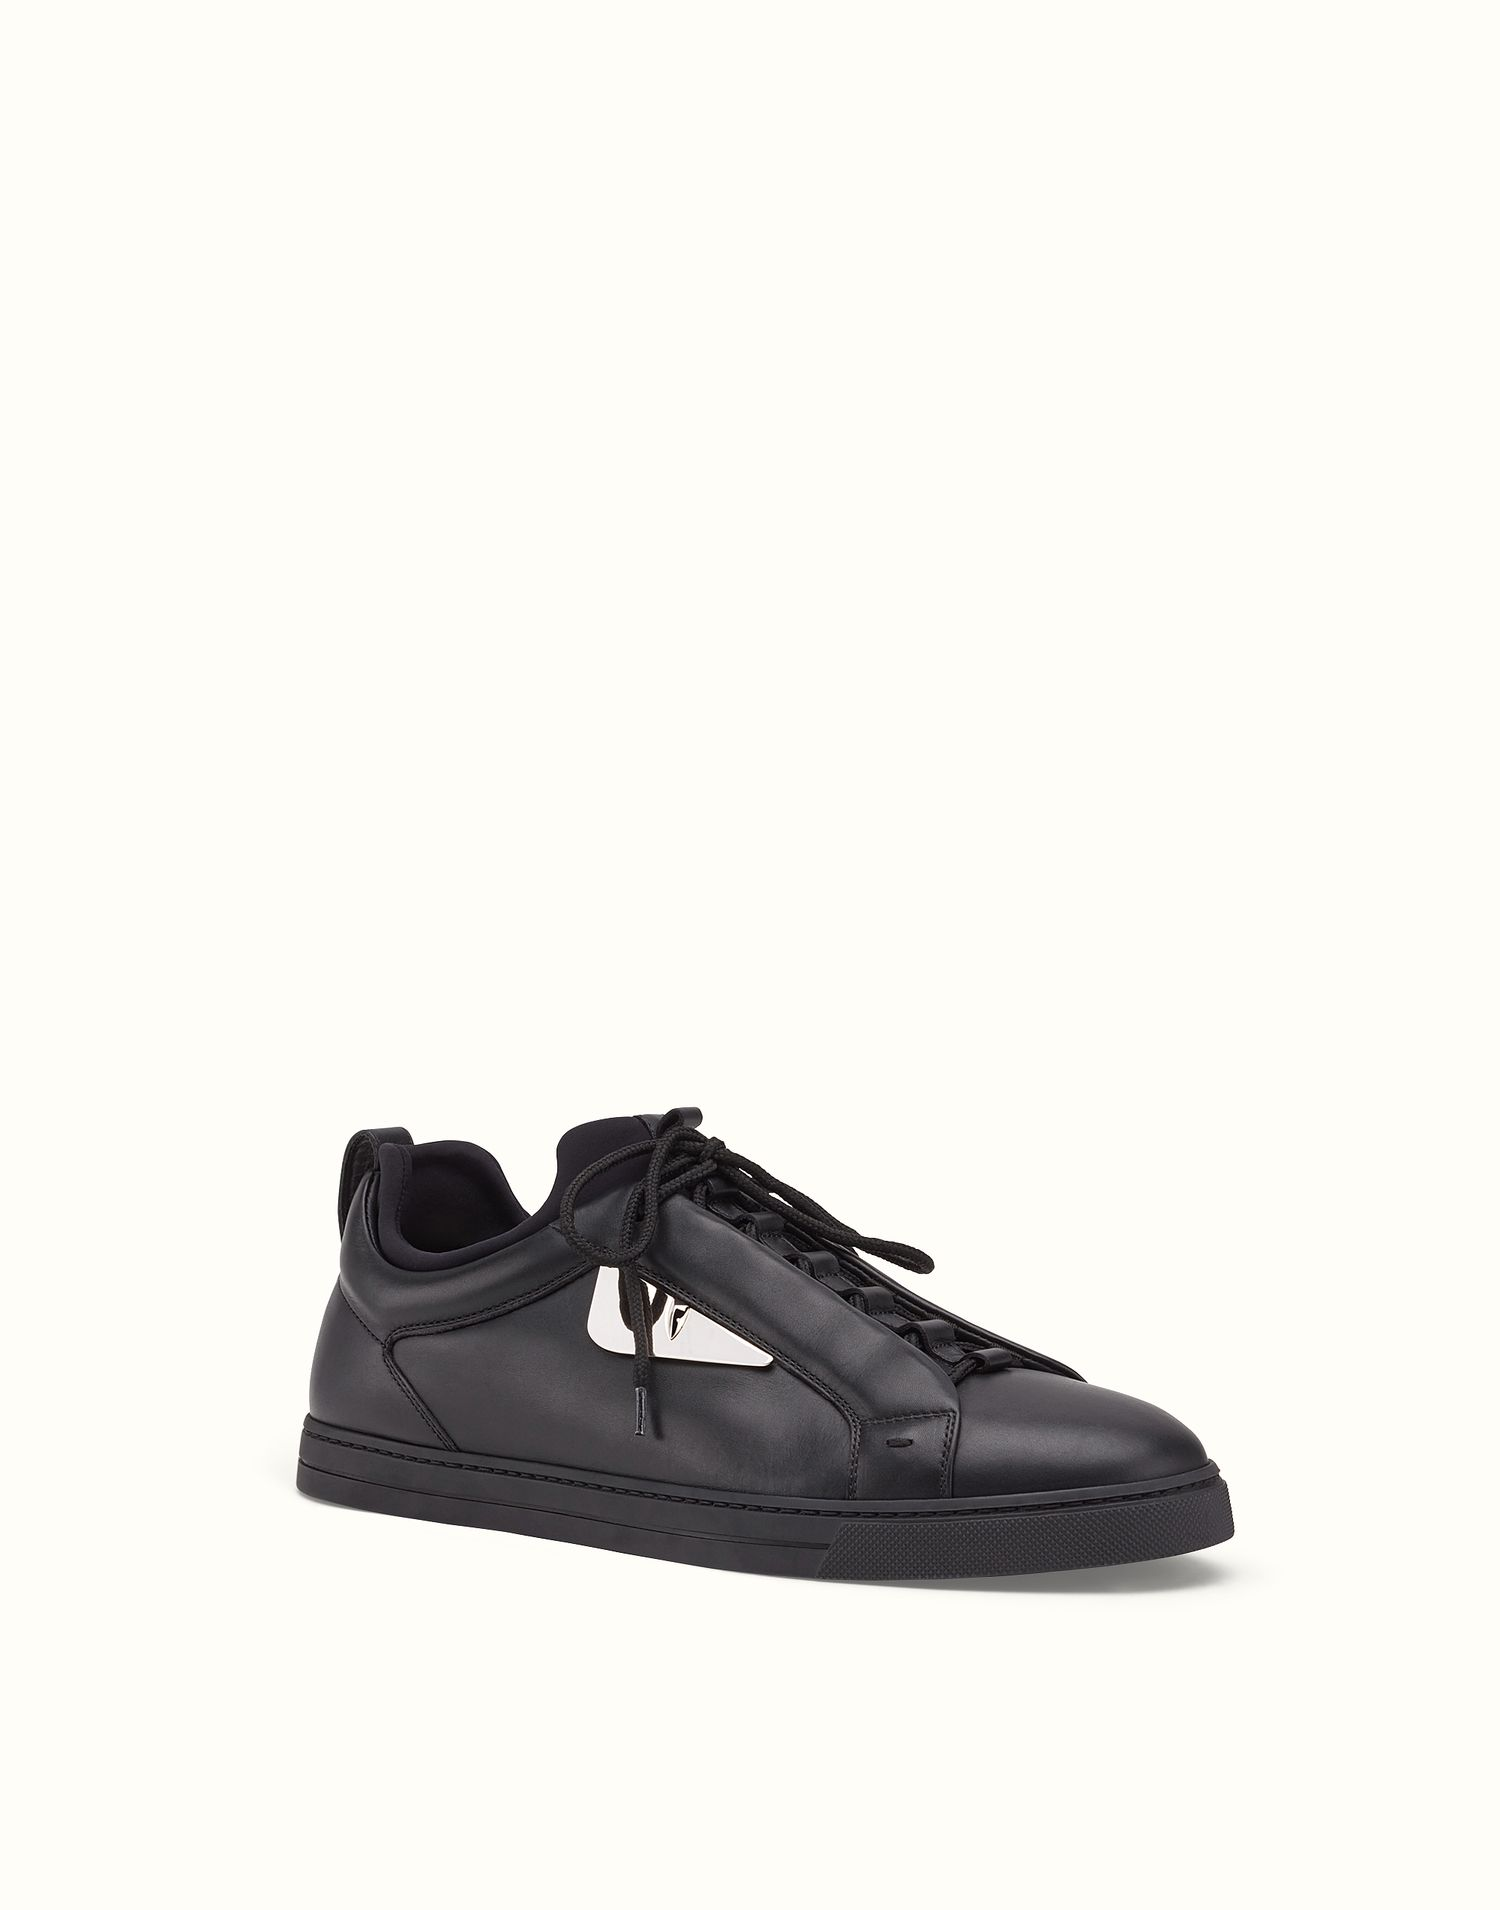 Sneaker   Men sneakers   Pinterest   Sneakers, Leather and lace et Fendi bfc37c2287f